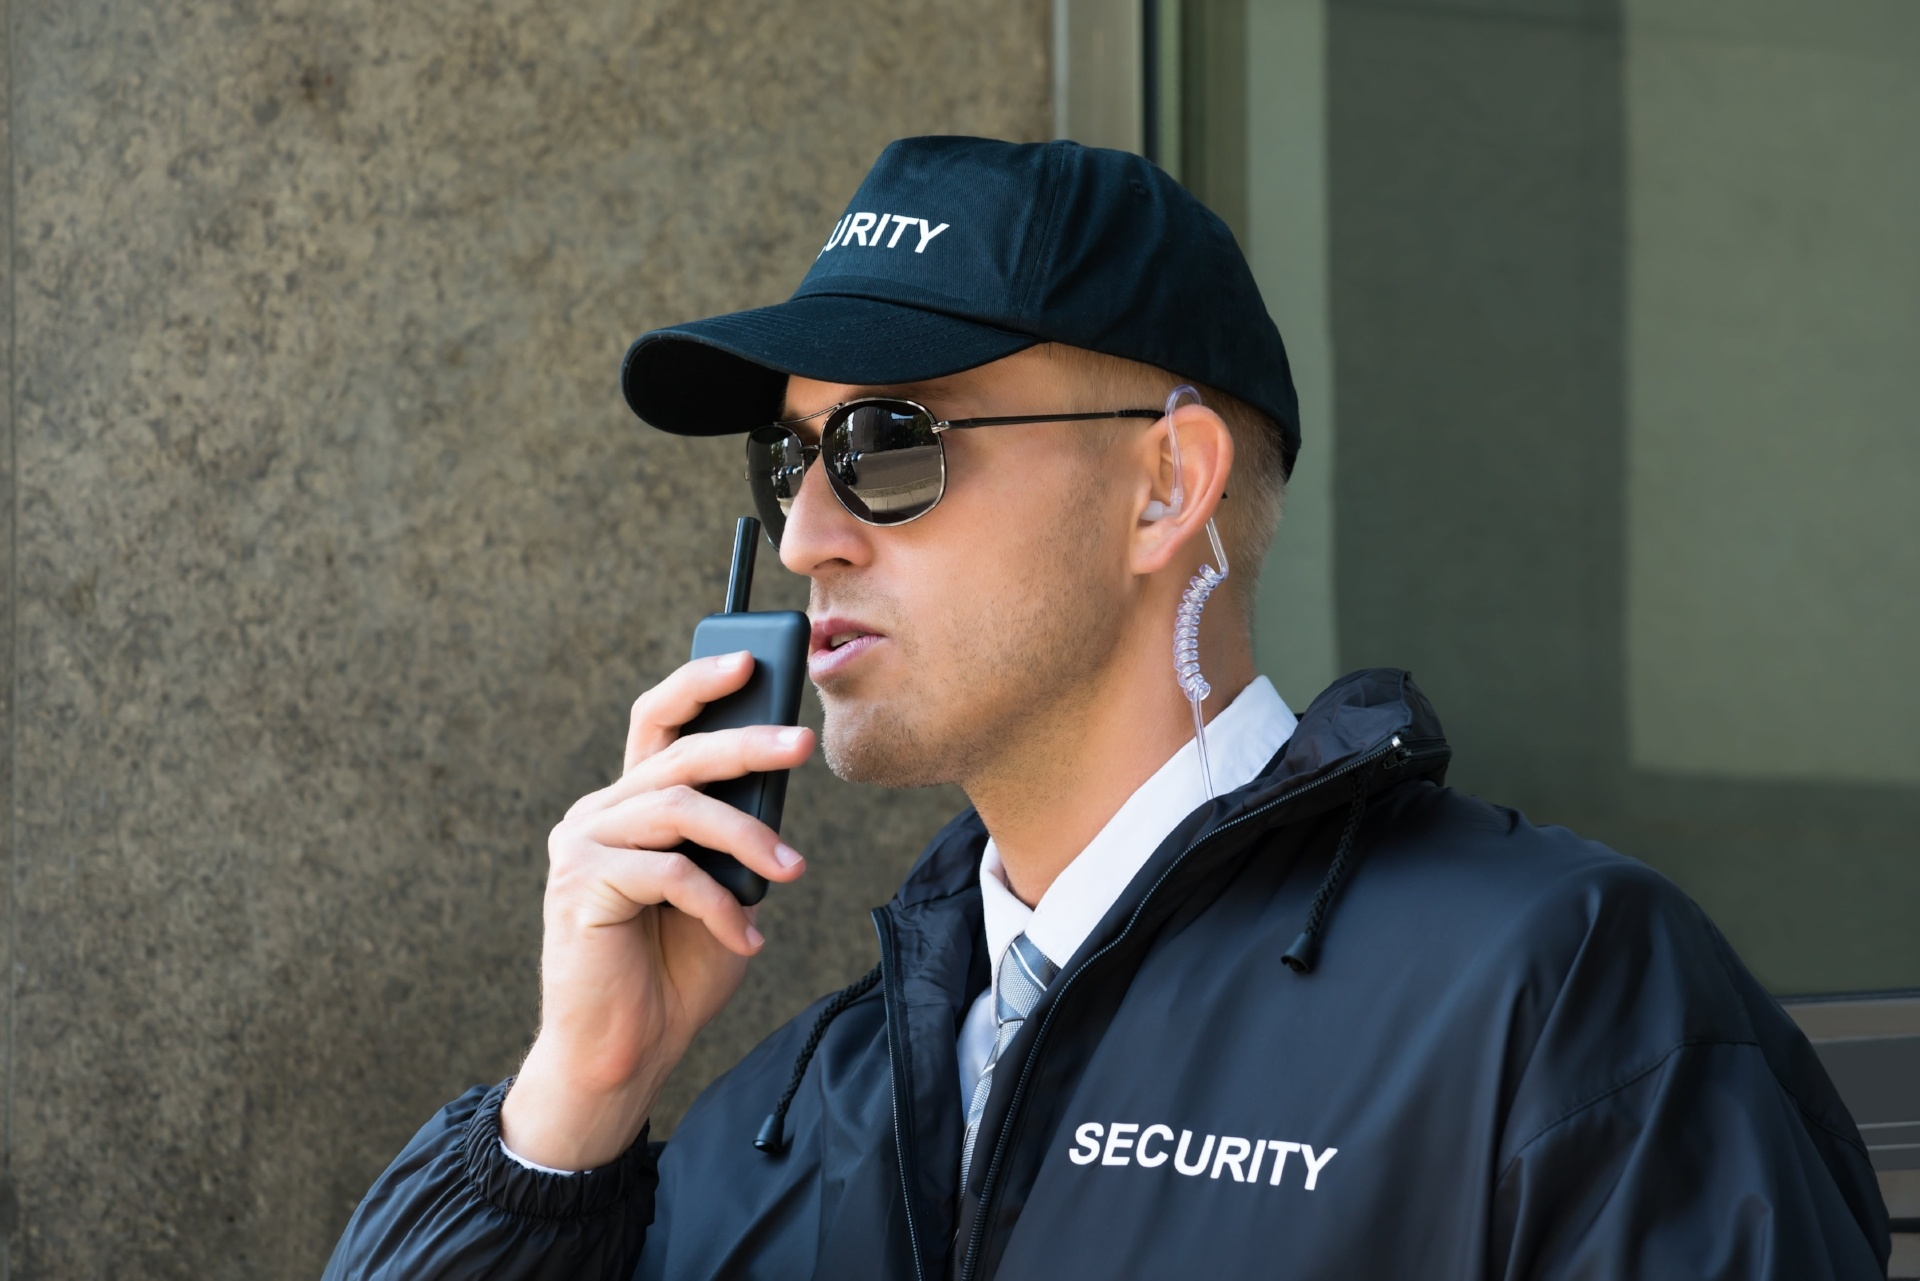 Security office on a walkie-talkie